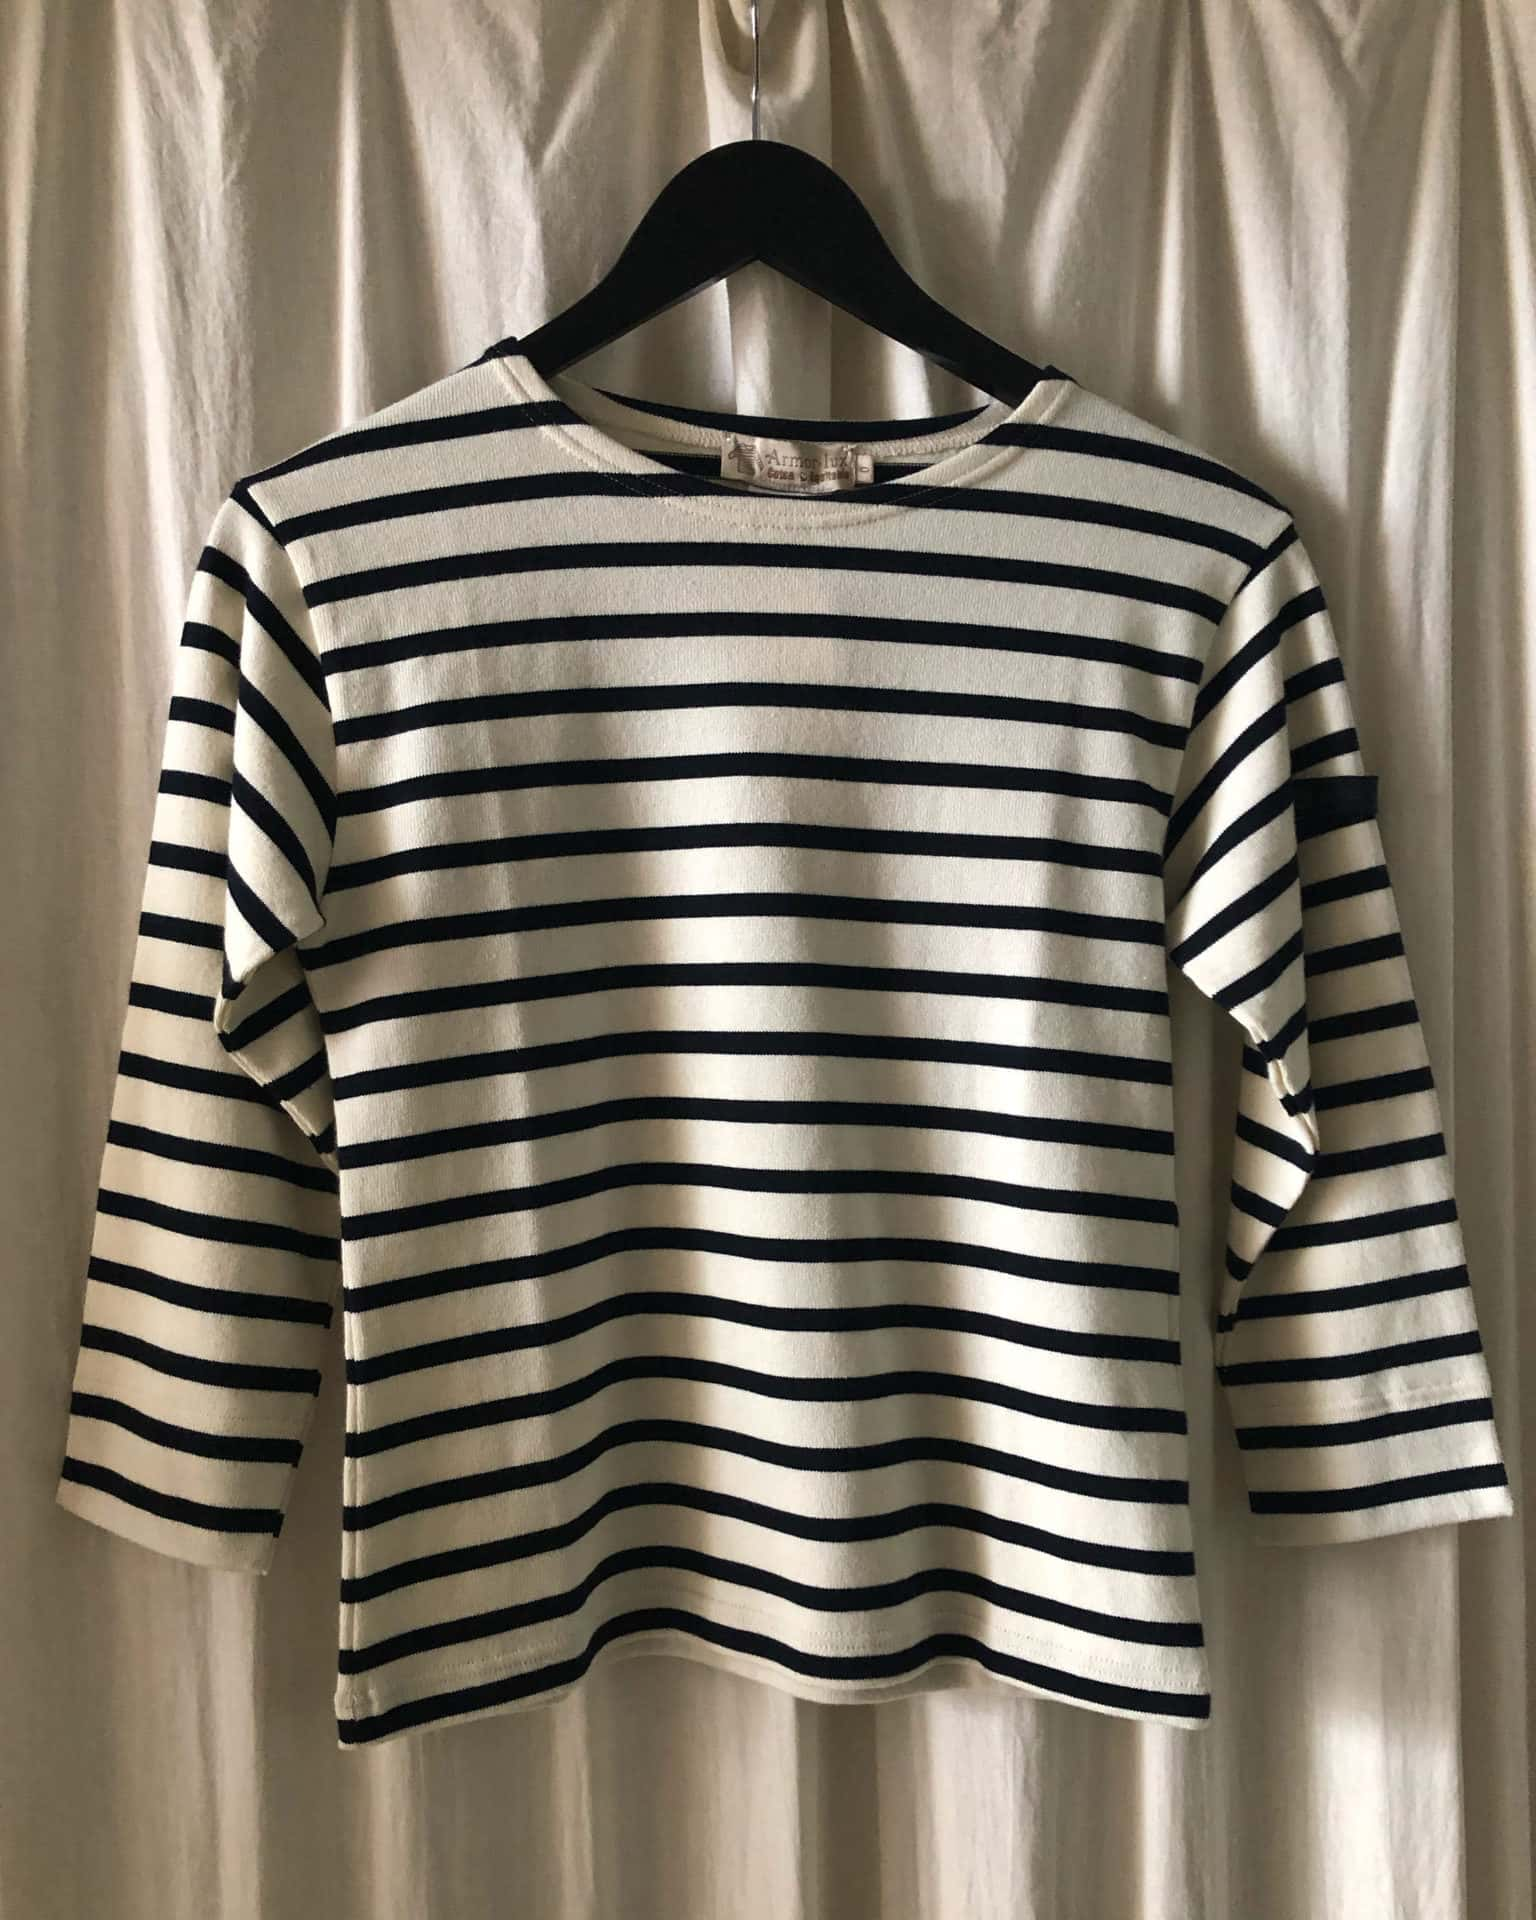 Berton striped blouse ecru and drak navy